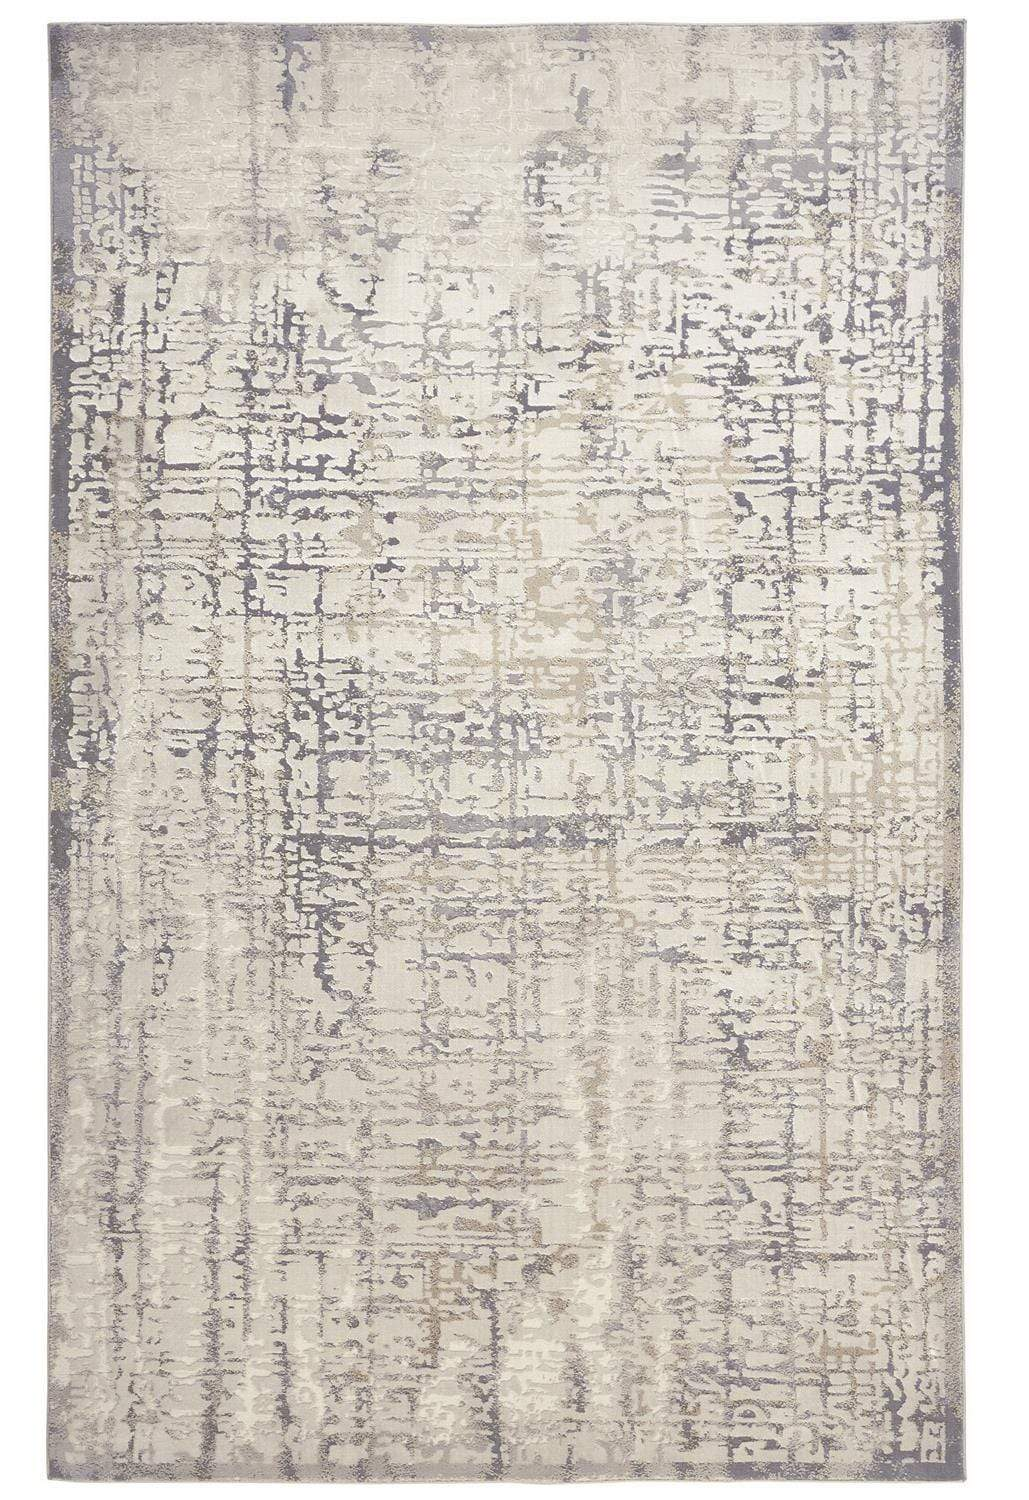 Feizy Waldor Distressed Absrtract Rug - Available in 7 Sizes - Wheat Beige & Silver Gray - 1'-8